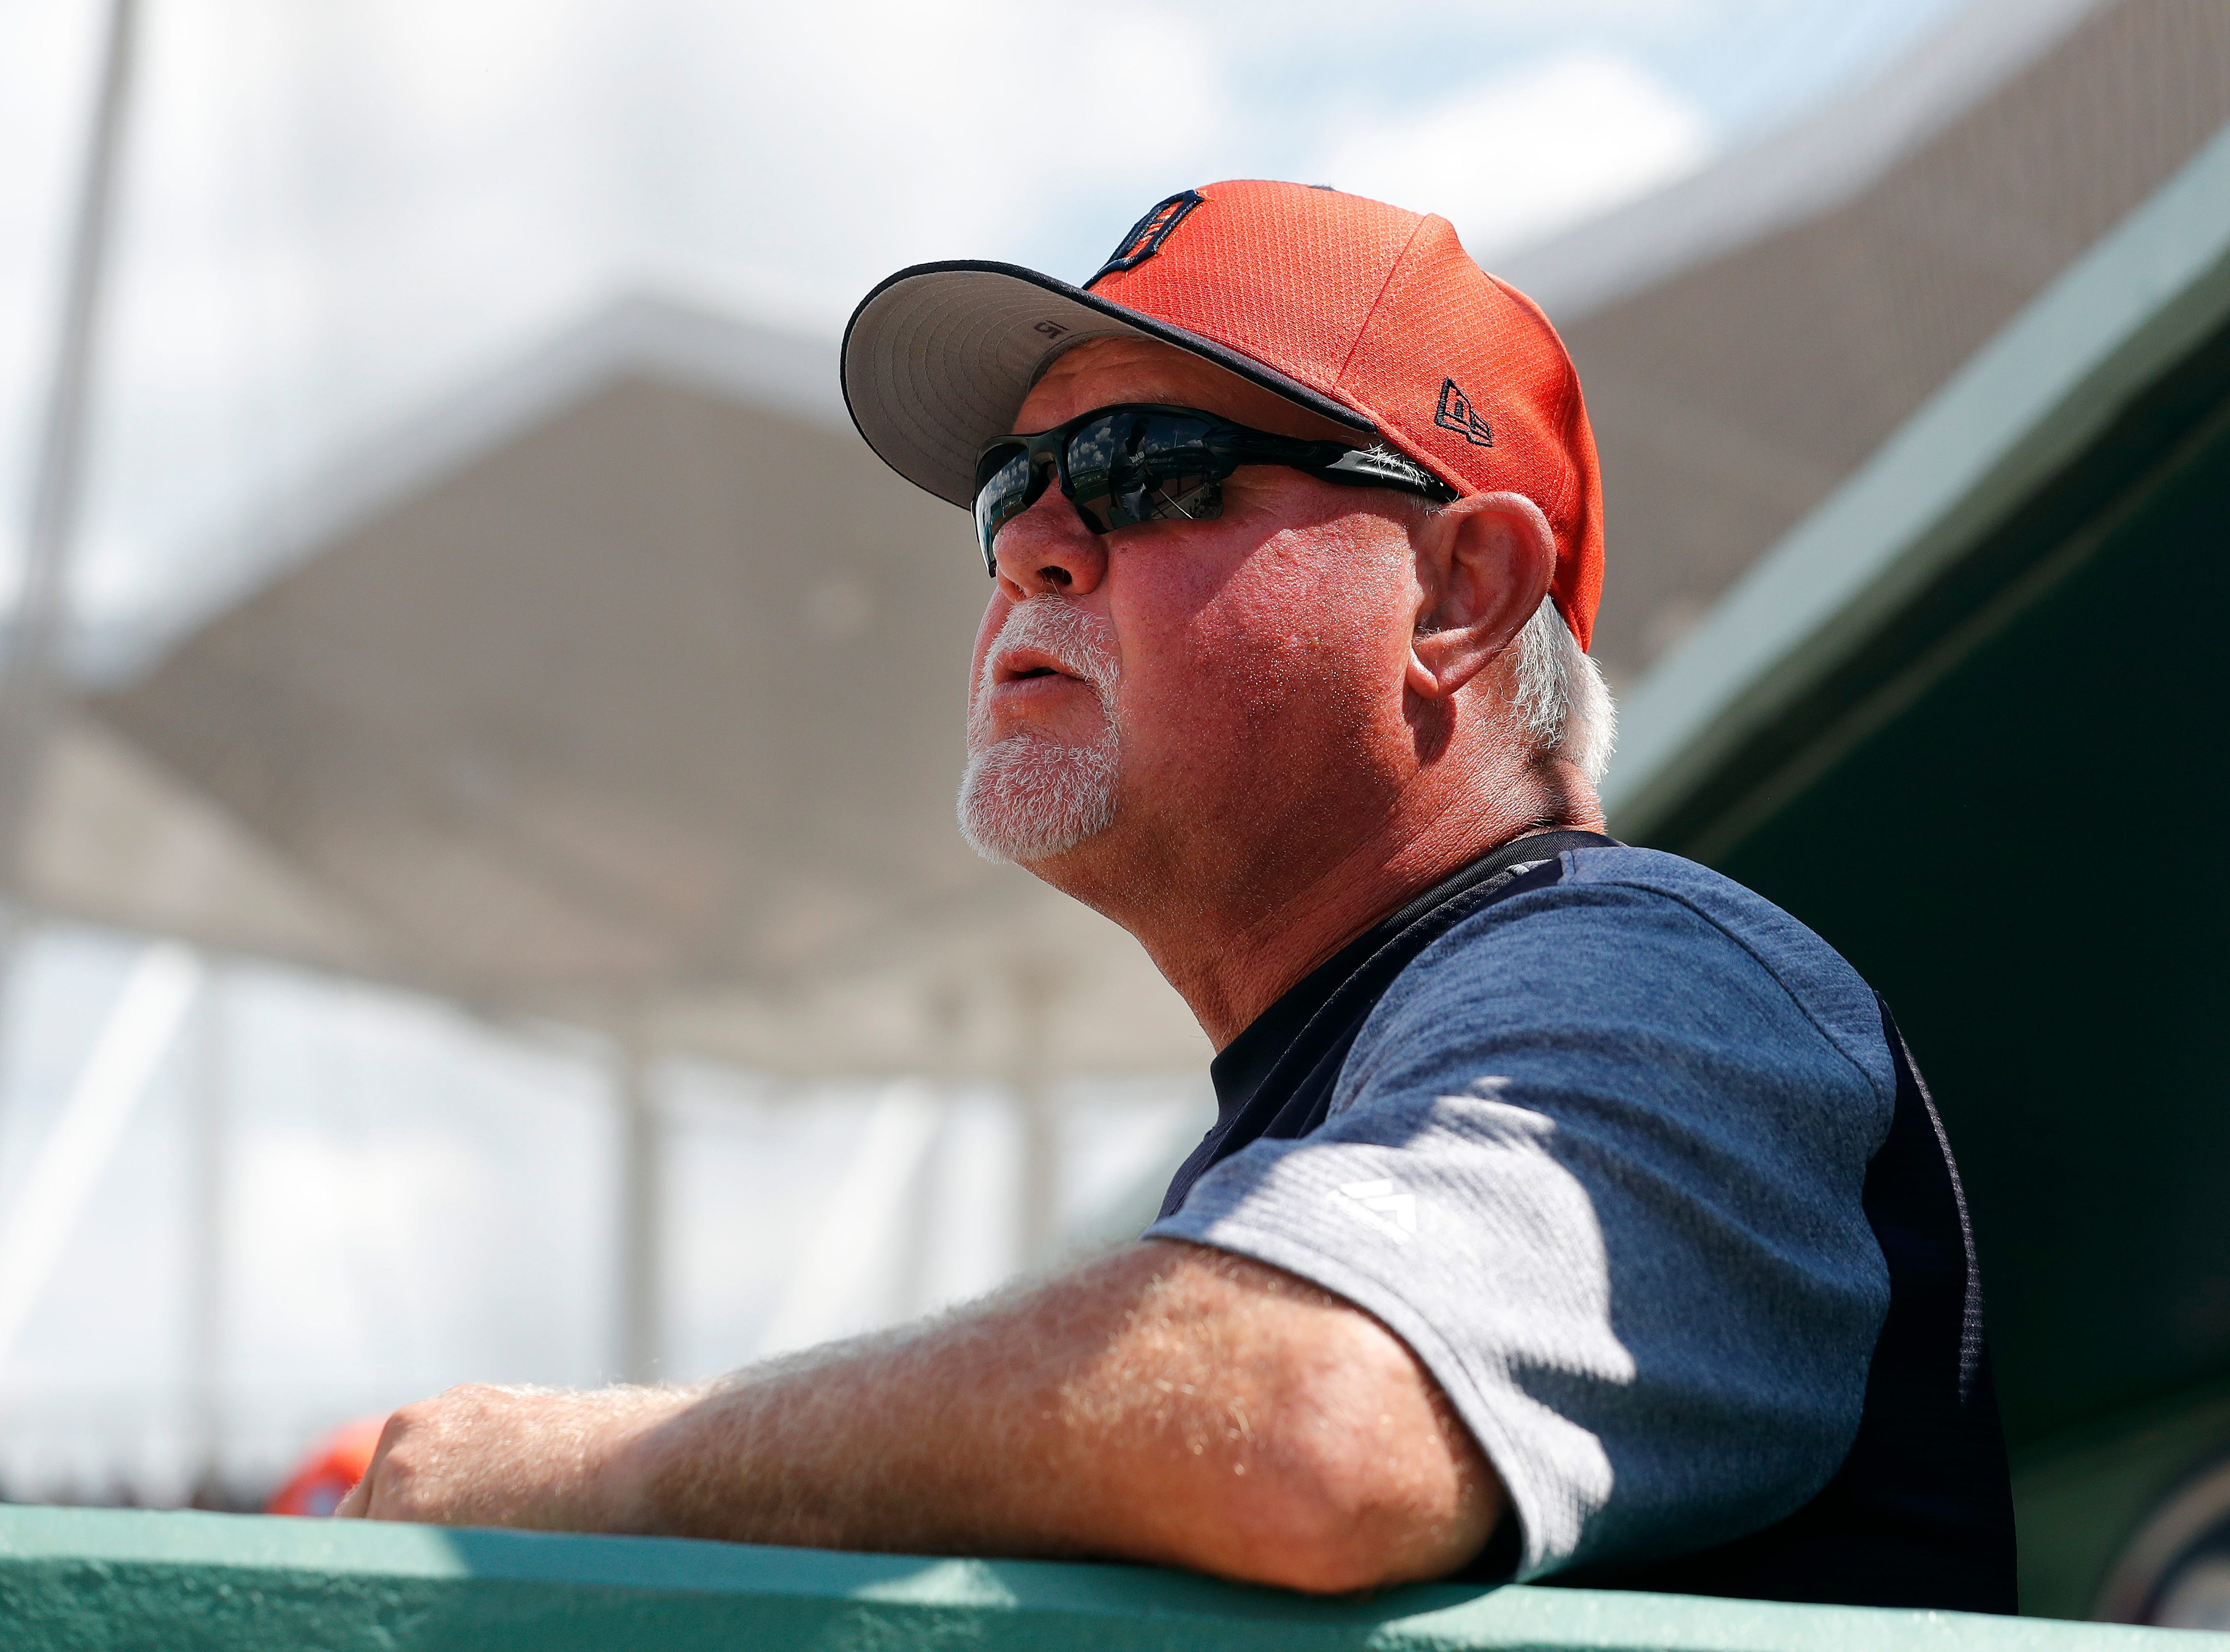 Detroit Tigers manager Ron Gardenhire watches from the dugout during the game.